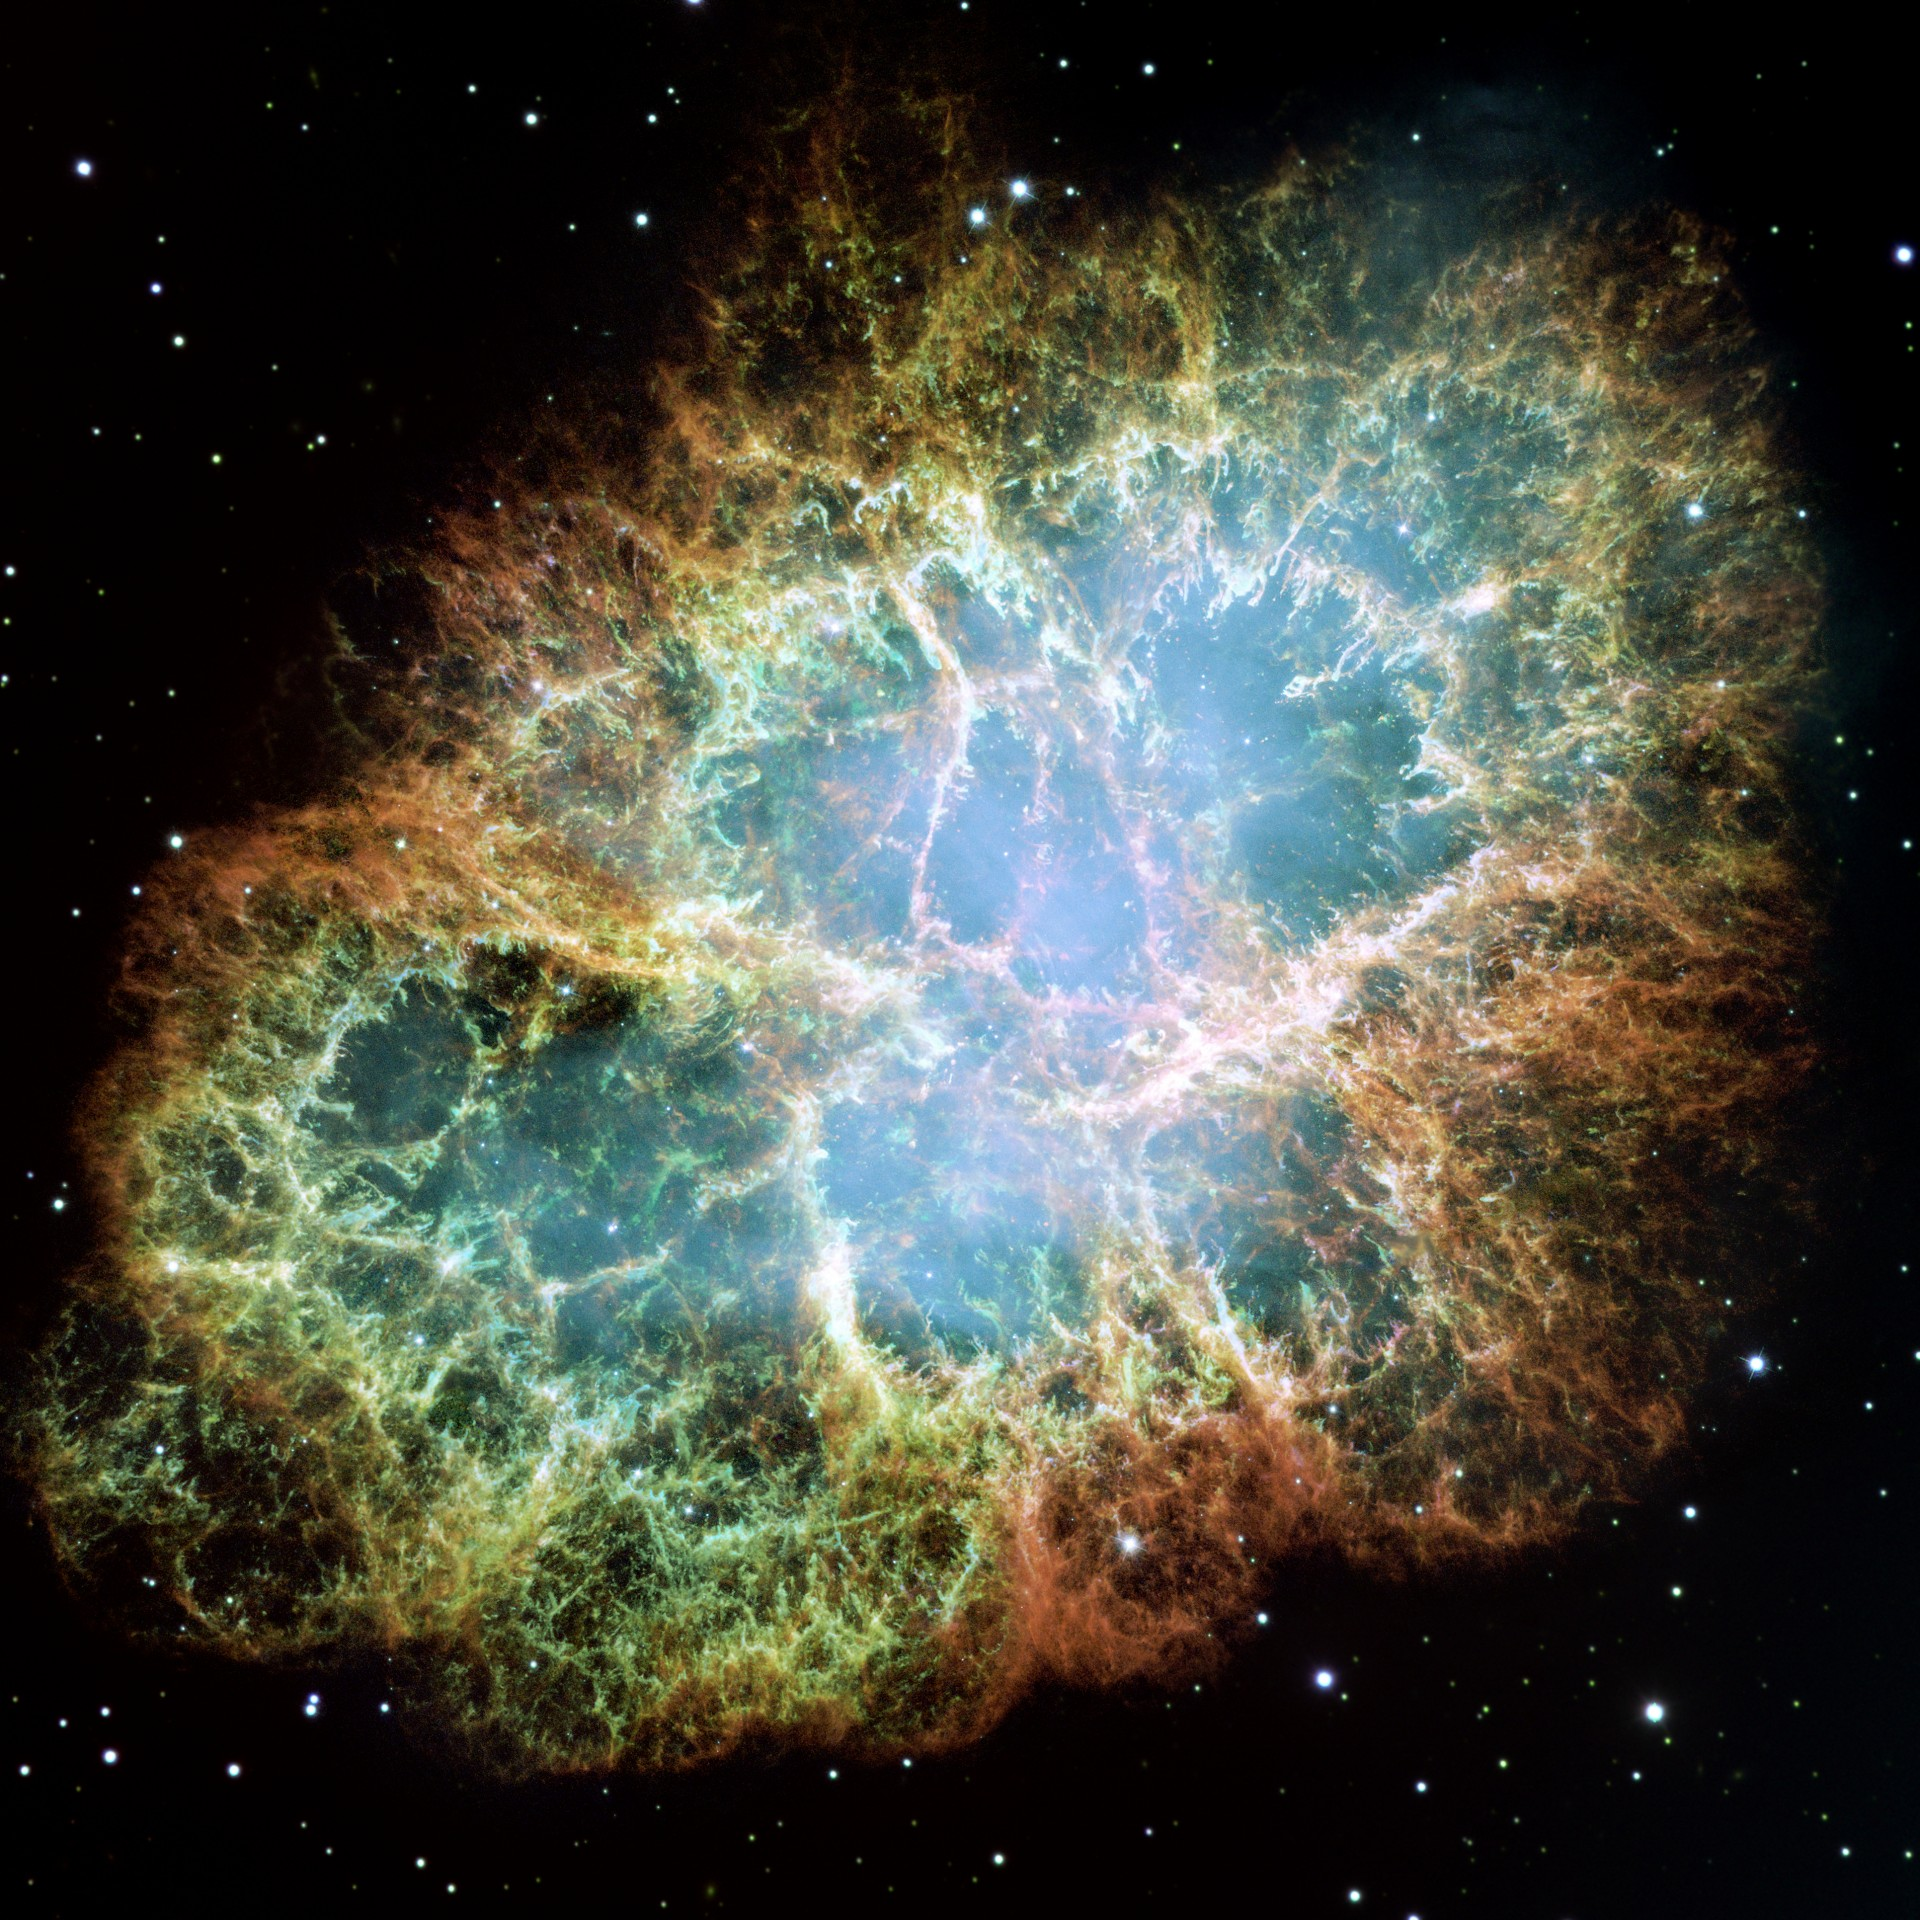 006 Crab Nebula Interesting Astronomy Topics For Research Marvelous Paper 1920